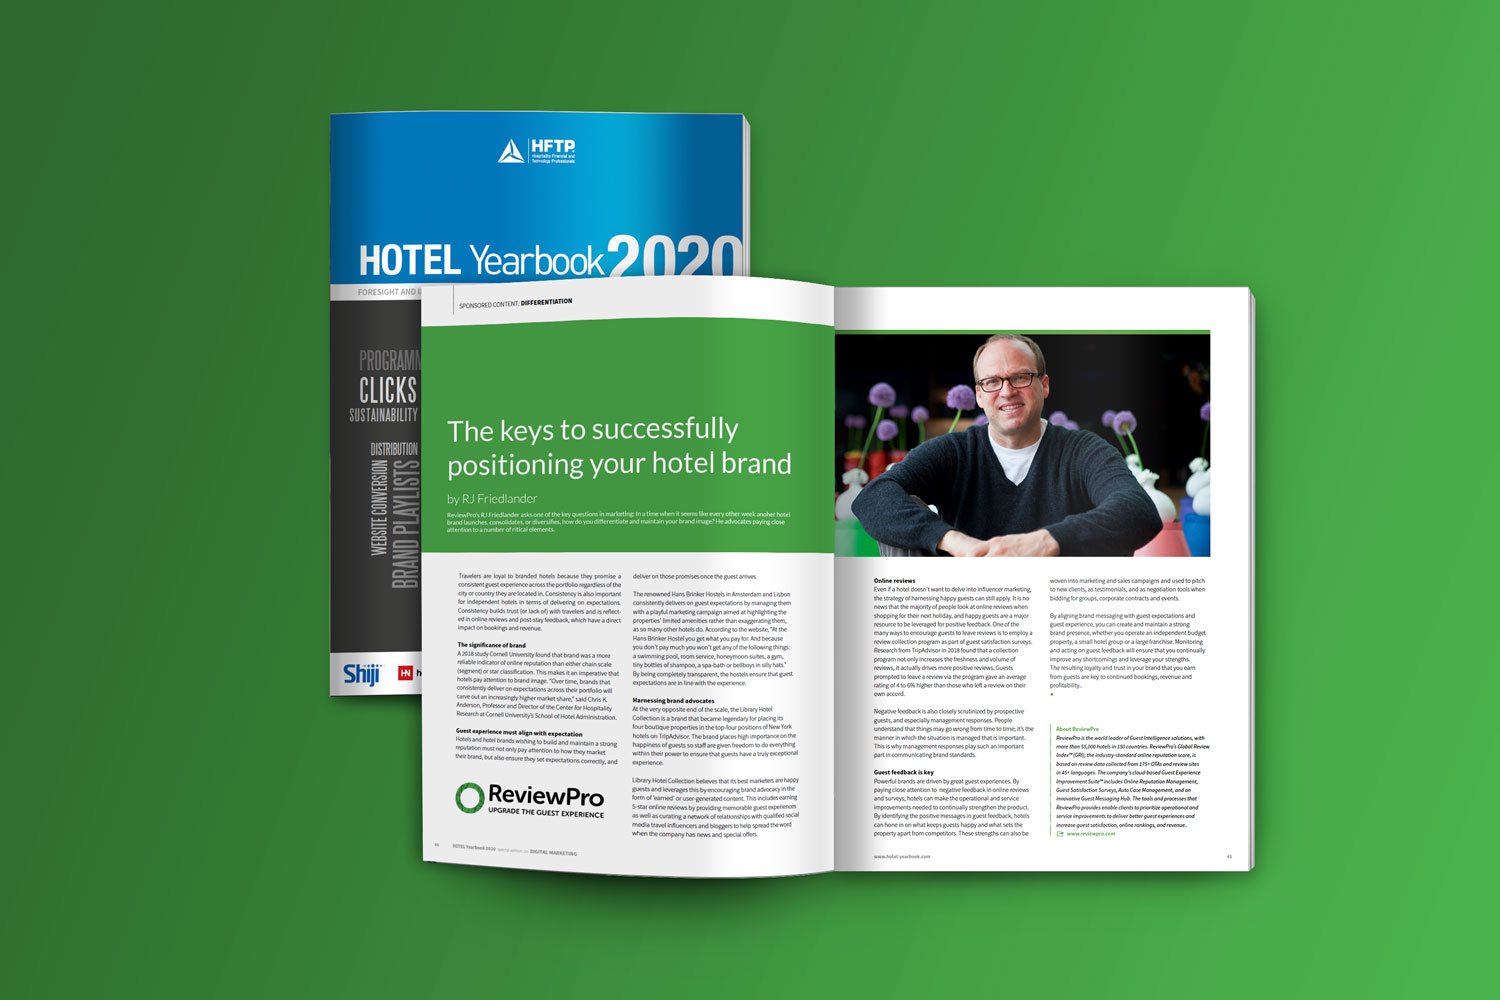 Once Driven Reviews >> Shiji Sponsors Hotel Yearbook 2020 On The Future Of Hotel Technology